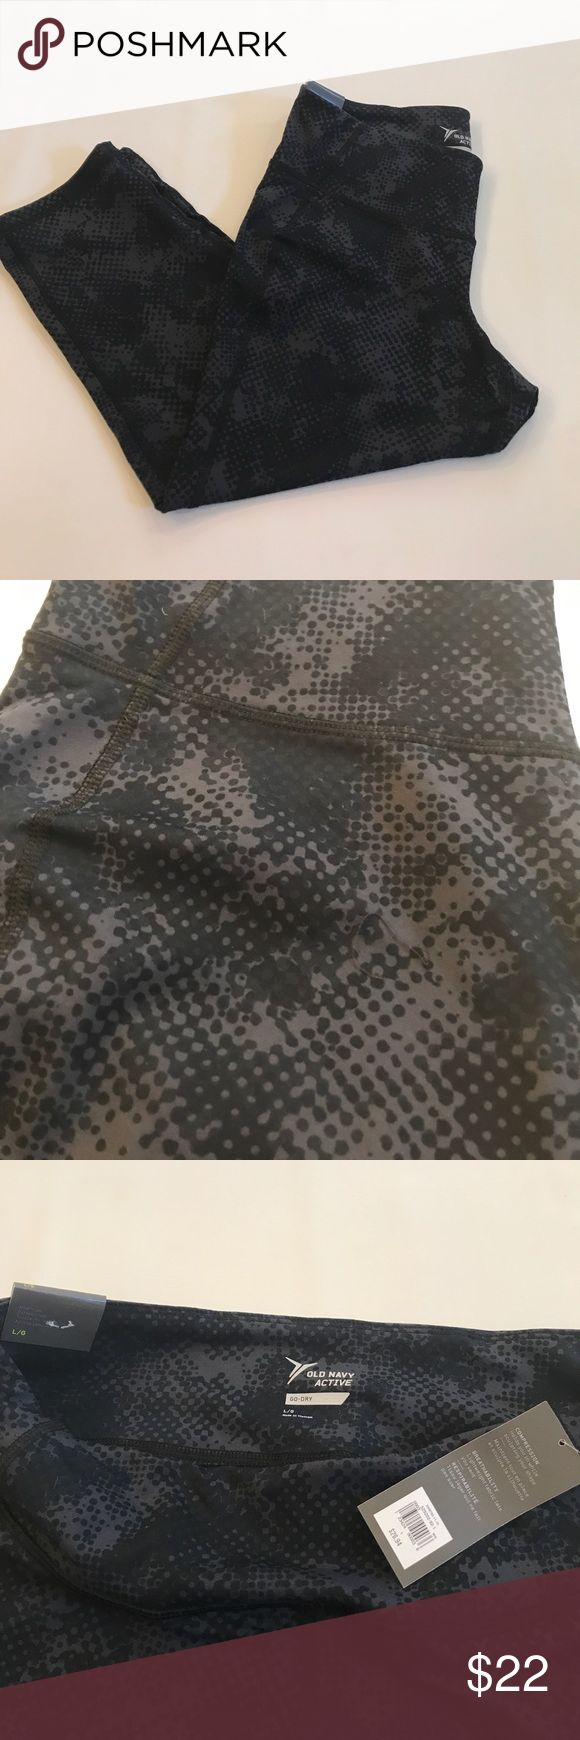 """New! Old Nacy active cropped patterned leggings New! 27"""" total length, 20"""" inseam. Go-dry cool fabric Old Navy Pants Leggings"""